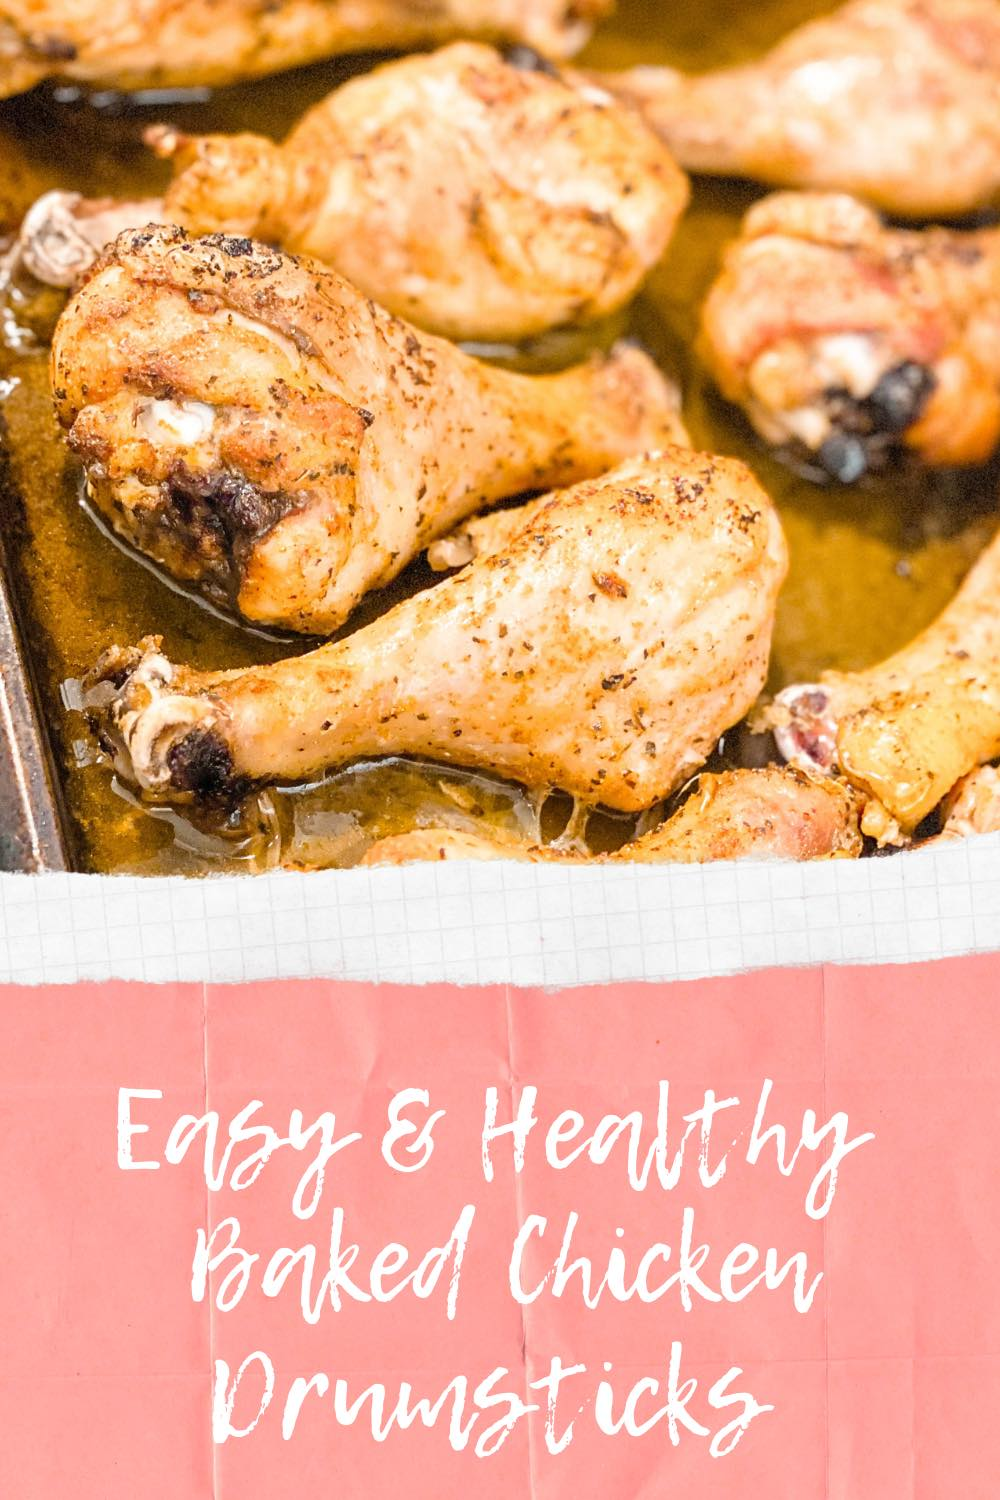 How to Make Baked Chicken Drumsticks